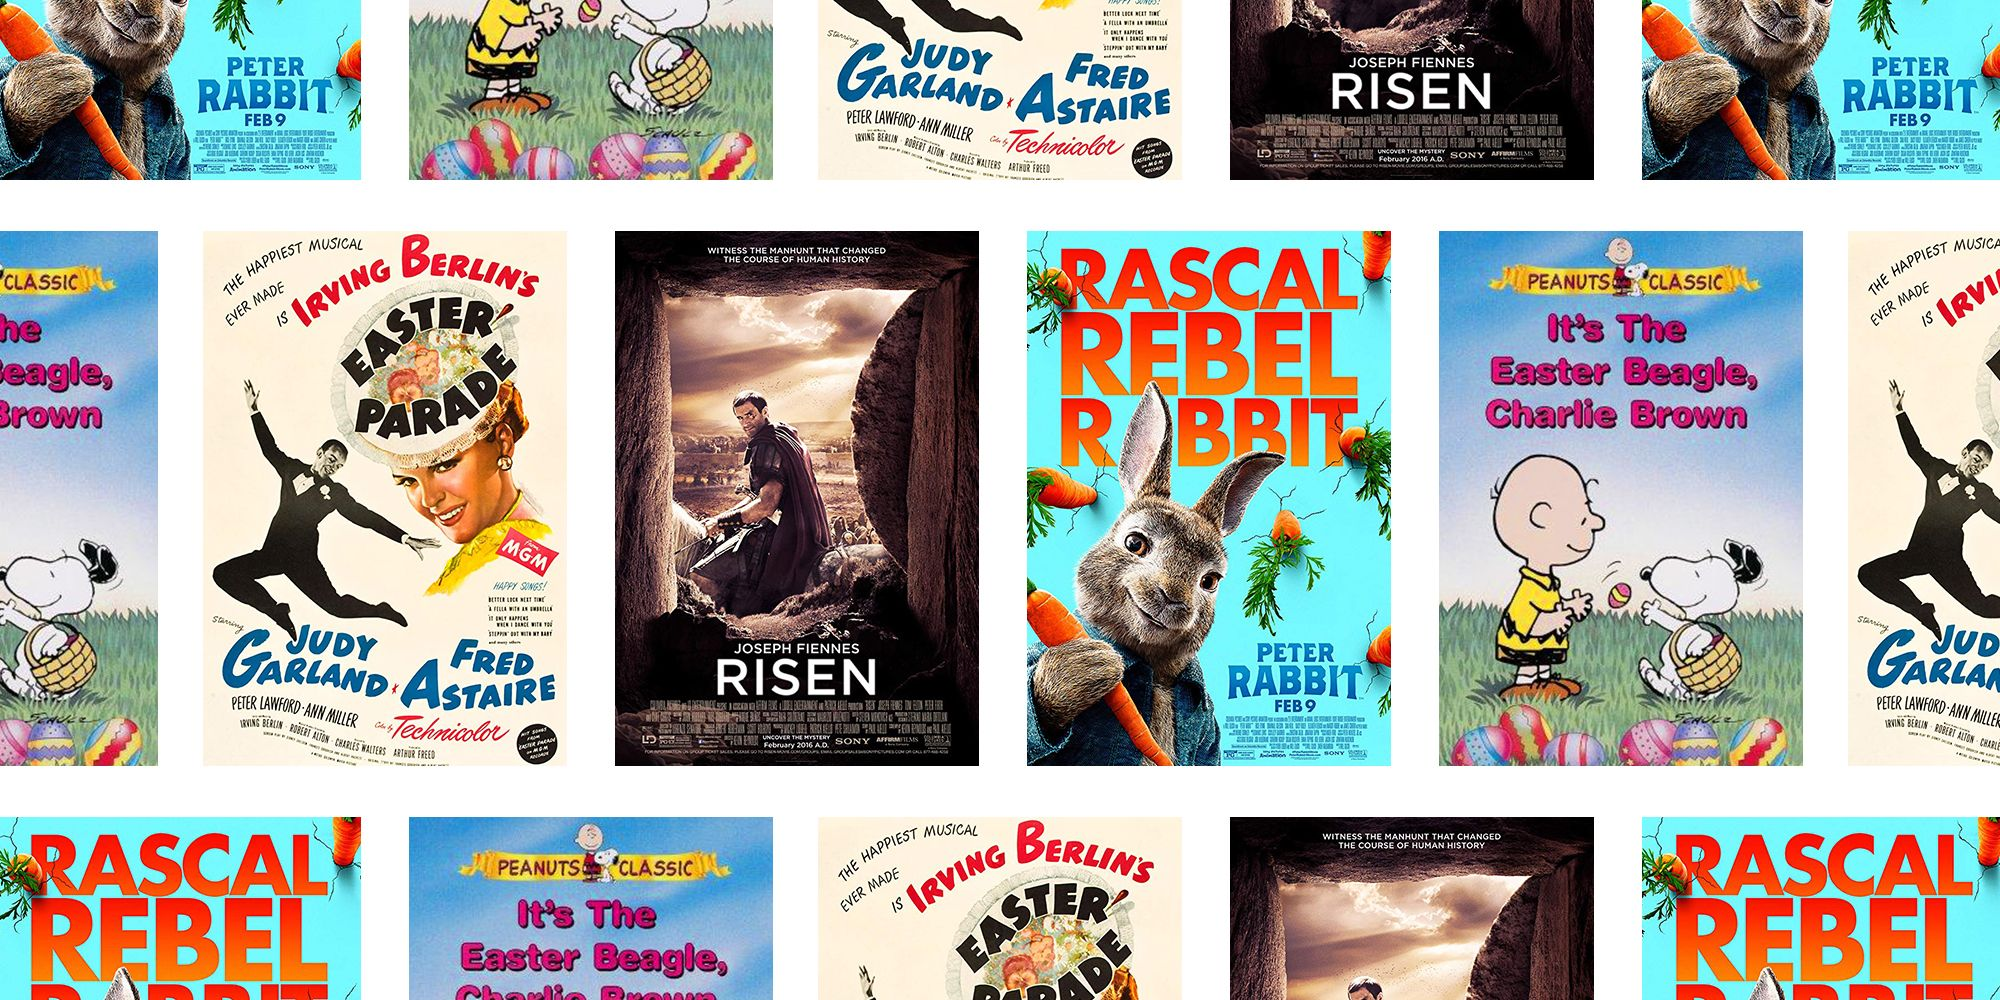 20 Best Easter Movies in 2020 - Great Easter Films for Kids and ...